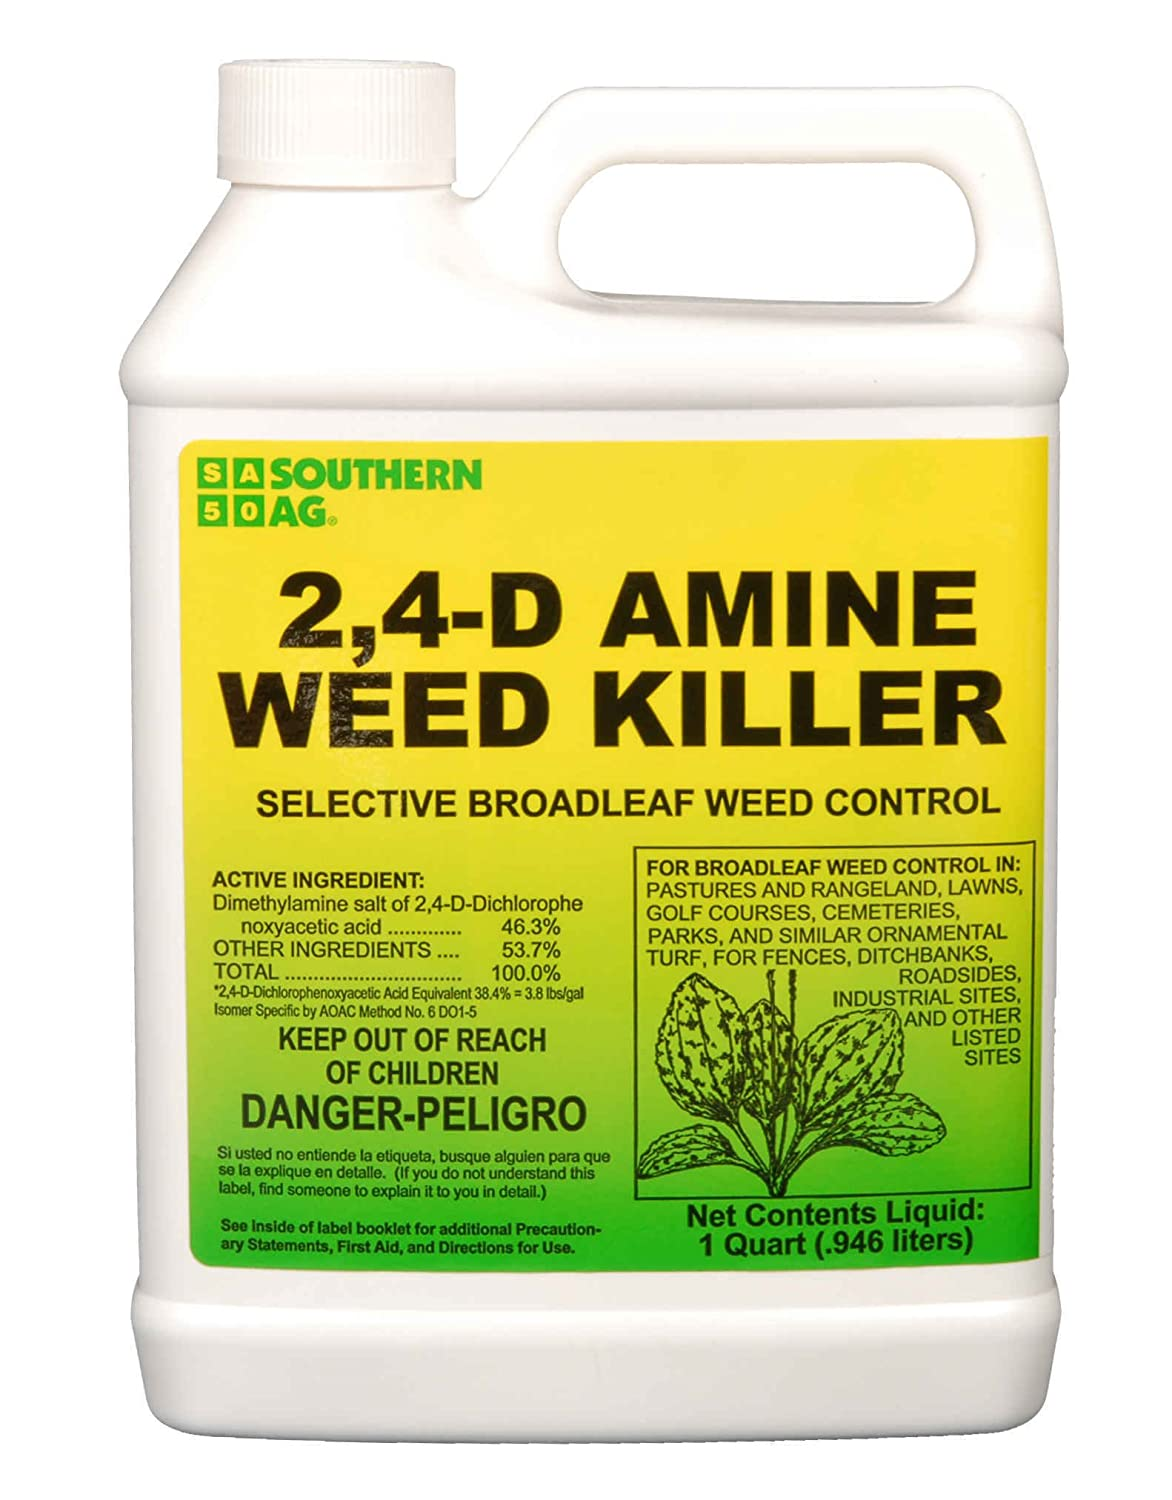 Southern Ag 2,4-D Amine Weed Killer Selective Broadleaf Weed Control spray for lawns